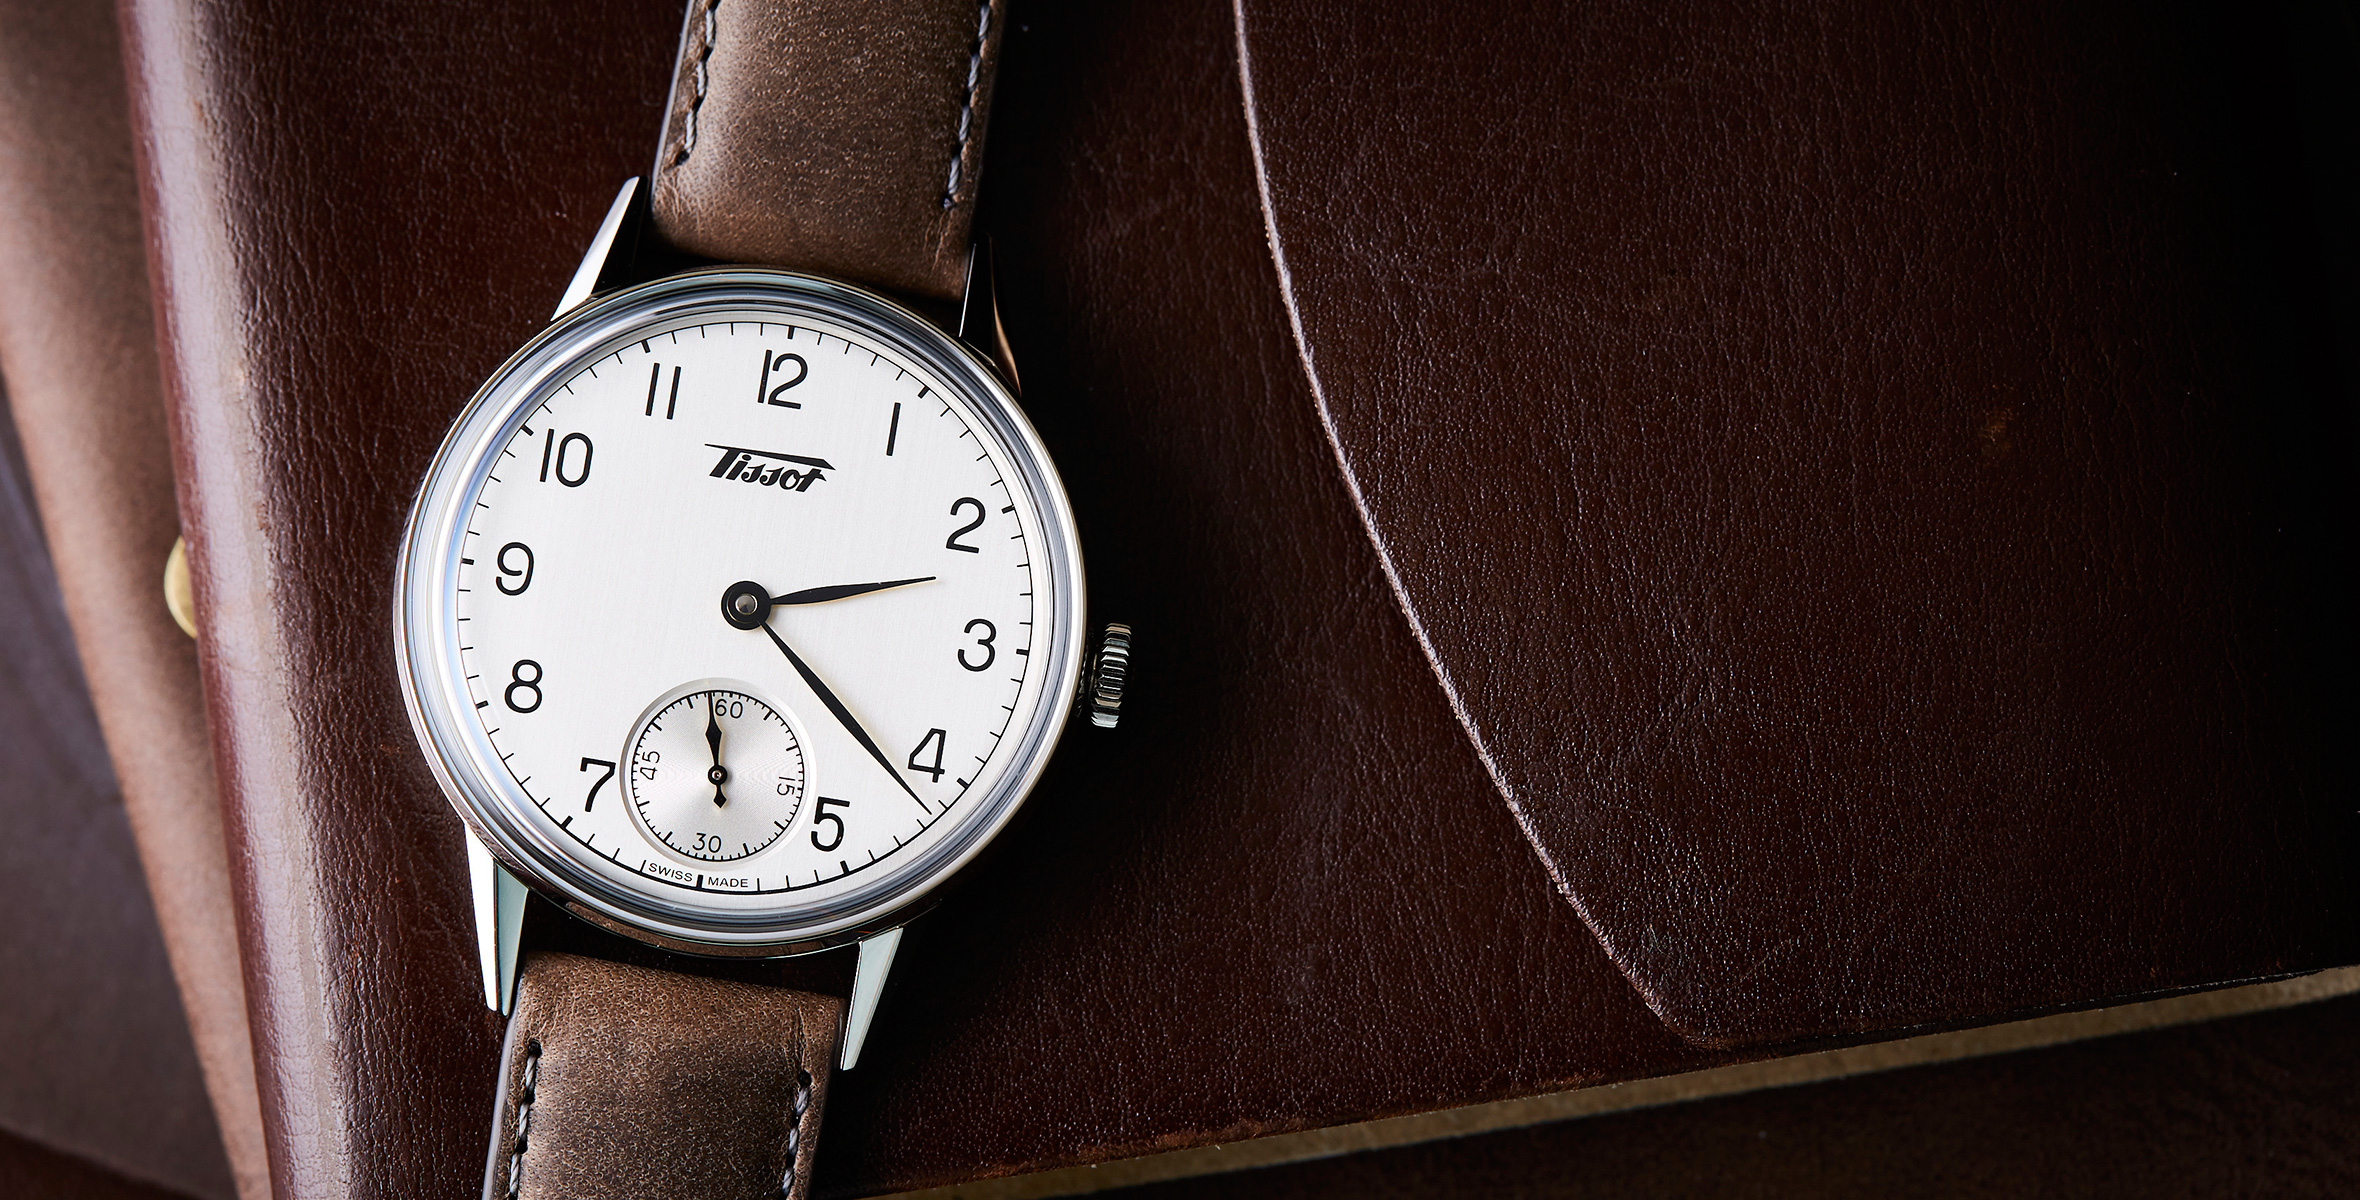 ANNOUNCING: New in the shop, the handsome AF Tissot Heritage Petite Seconde and why we rate it